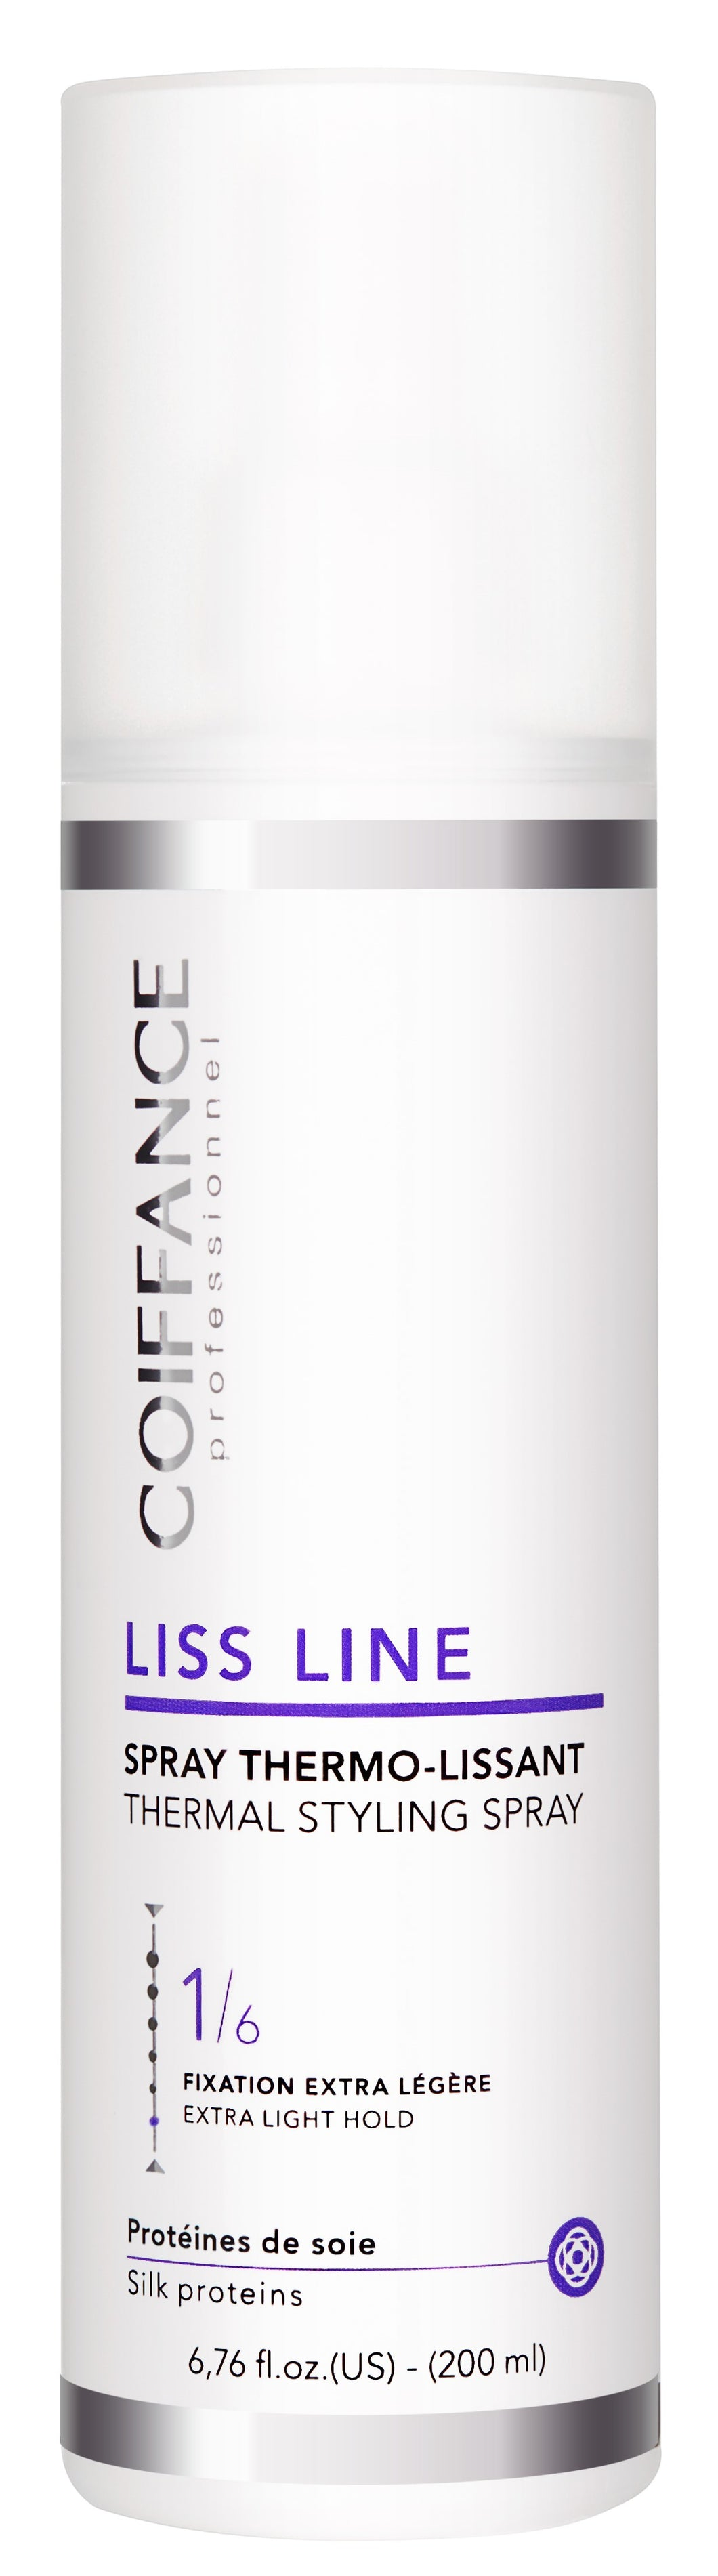 liss line - thermal styling spray